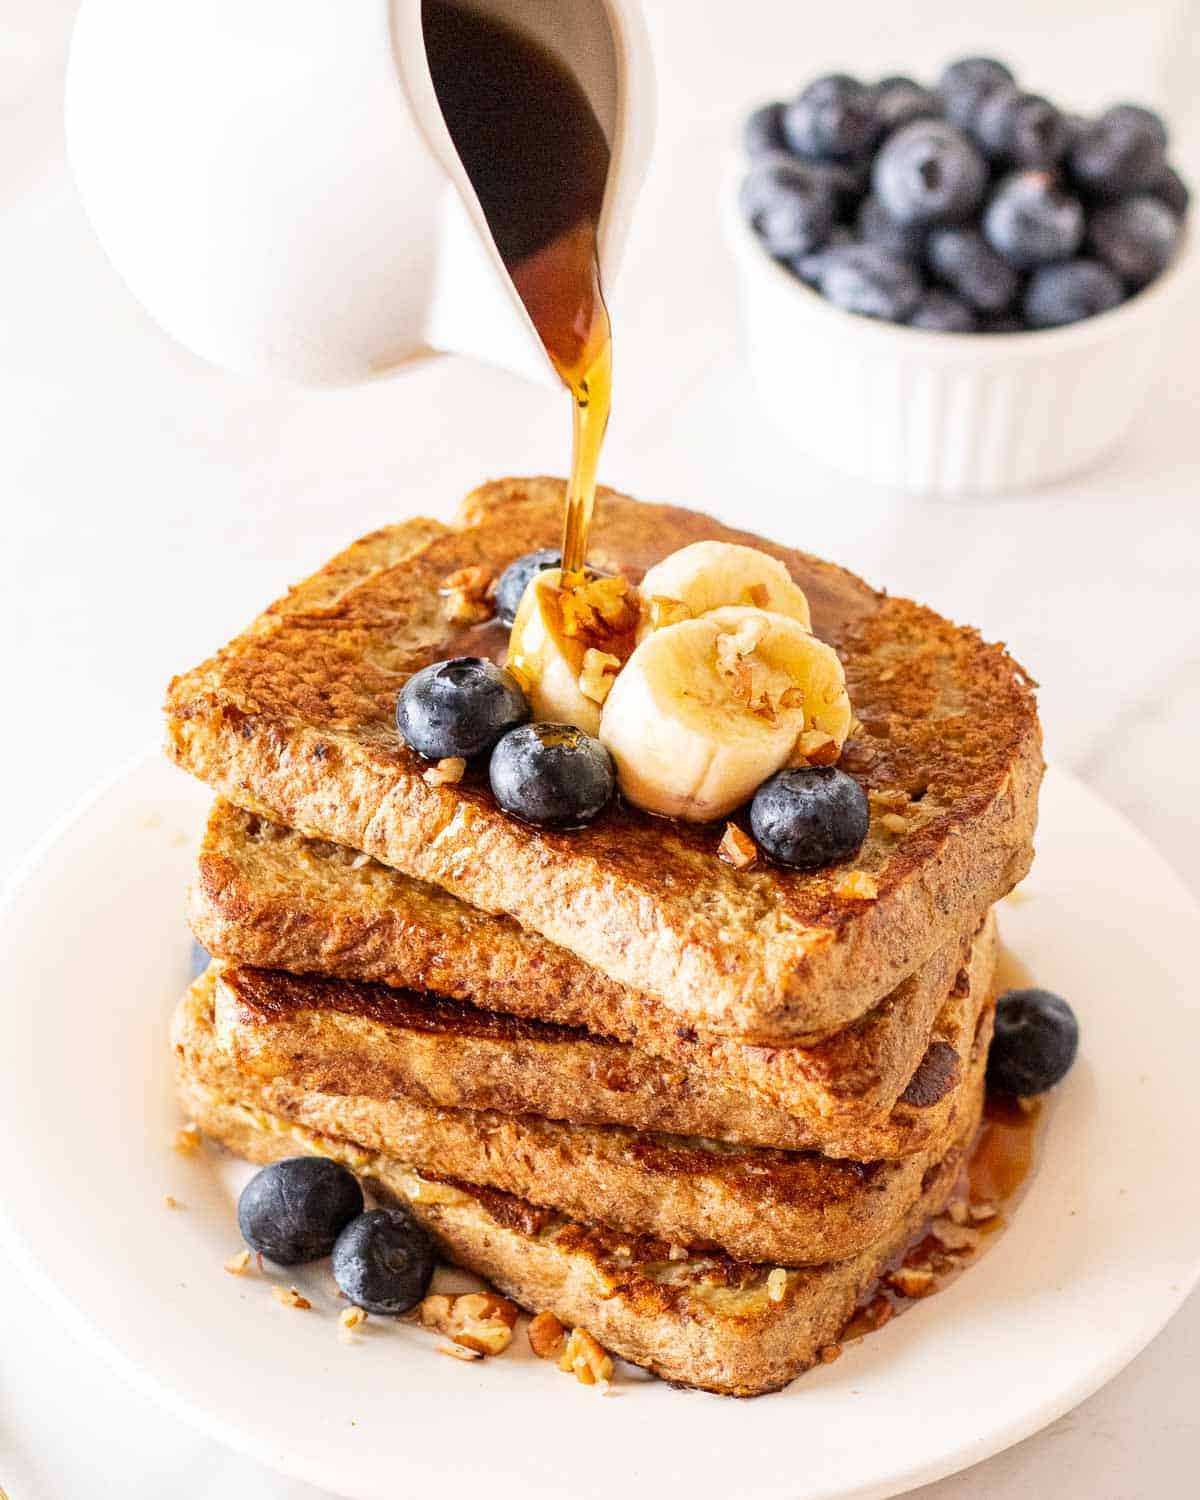 Pouring maple syrup over a stack of eggless French toast. There is a bowl of blueberries in the background.